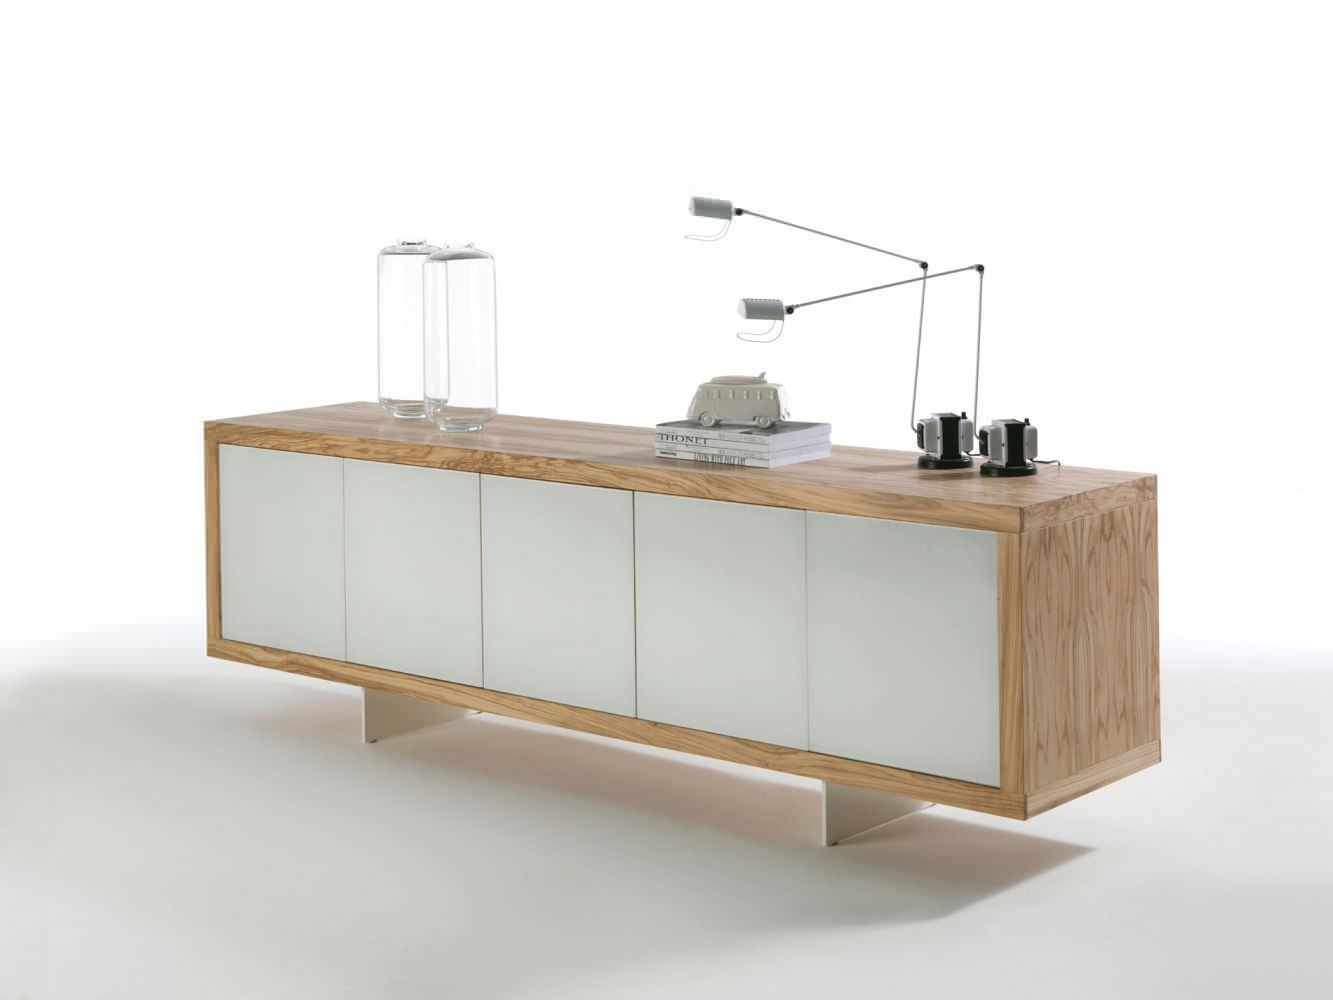 Sideboard holz glas  Modernes Sideboard / Holz / lackiertes Glas / Metall - MADERNO by ...